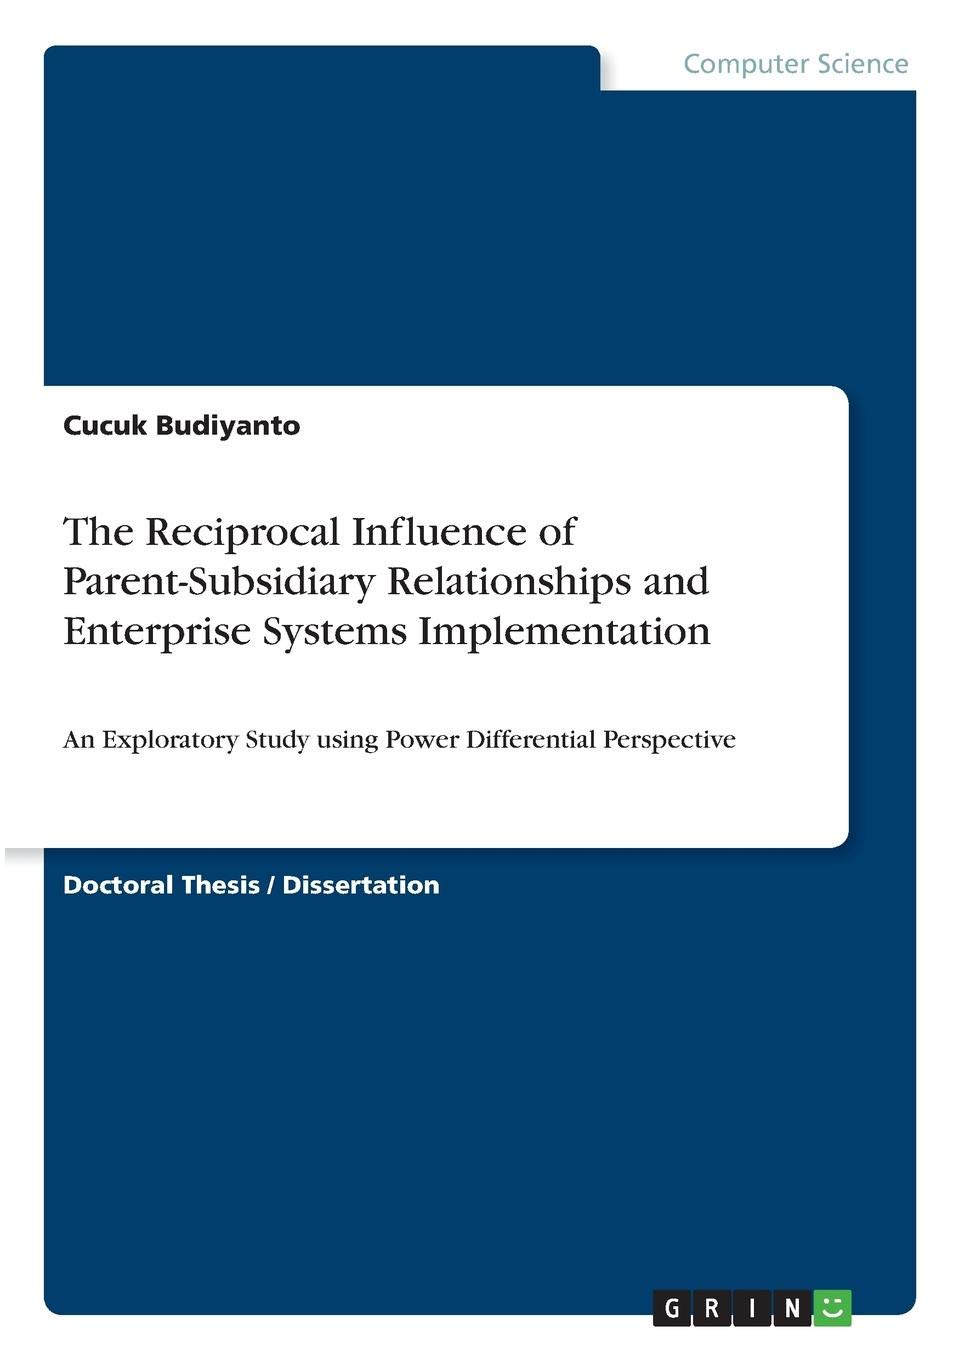 The Reciprocal Influence of Parent-Subsidiary Relationships